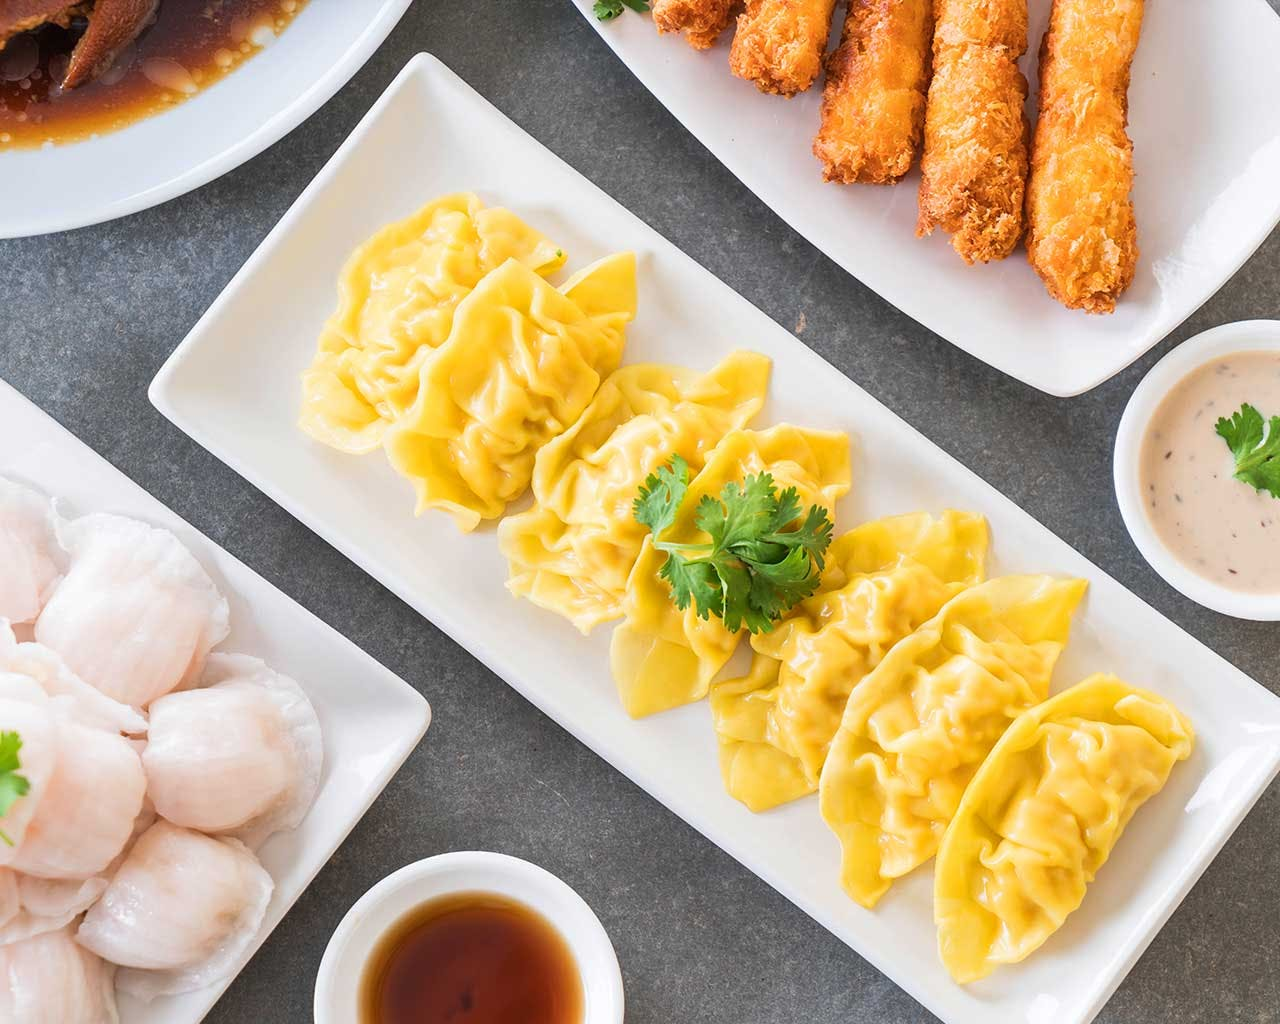 Where To Order 'Lucky' Dishes For Chinese New Year On February 12